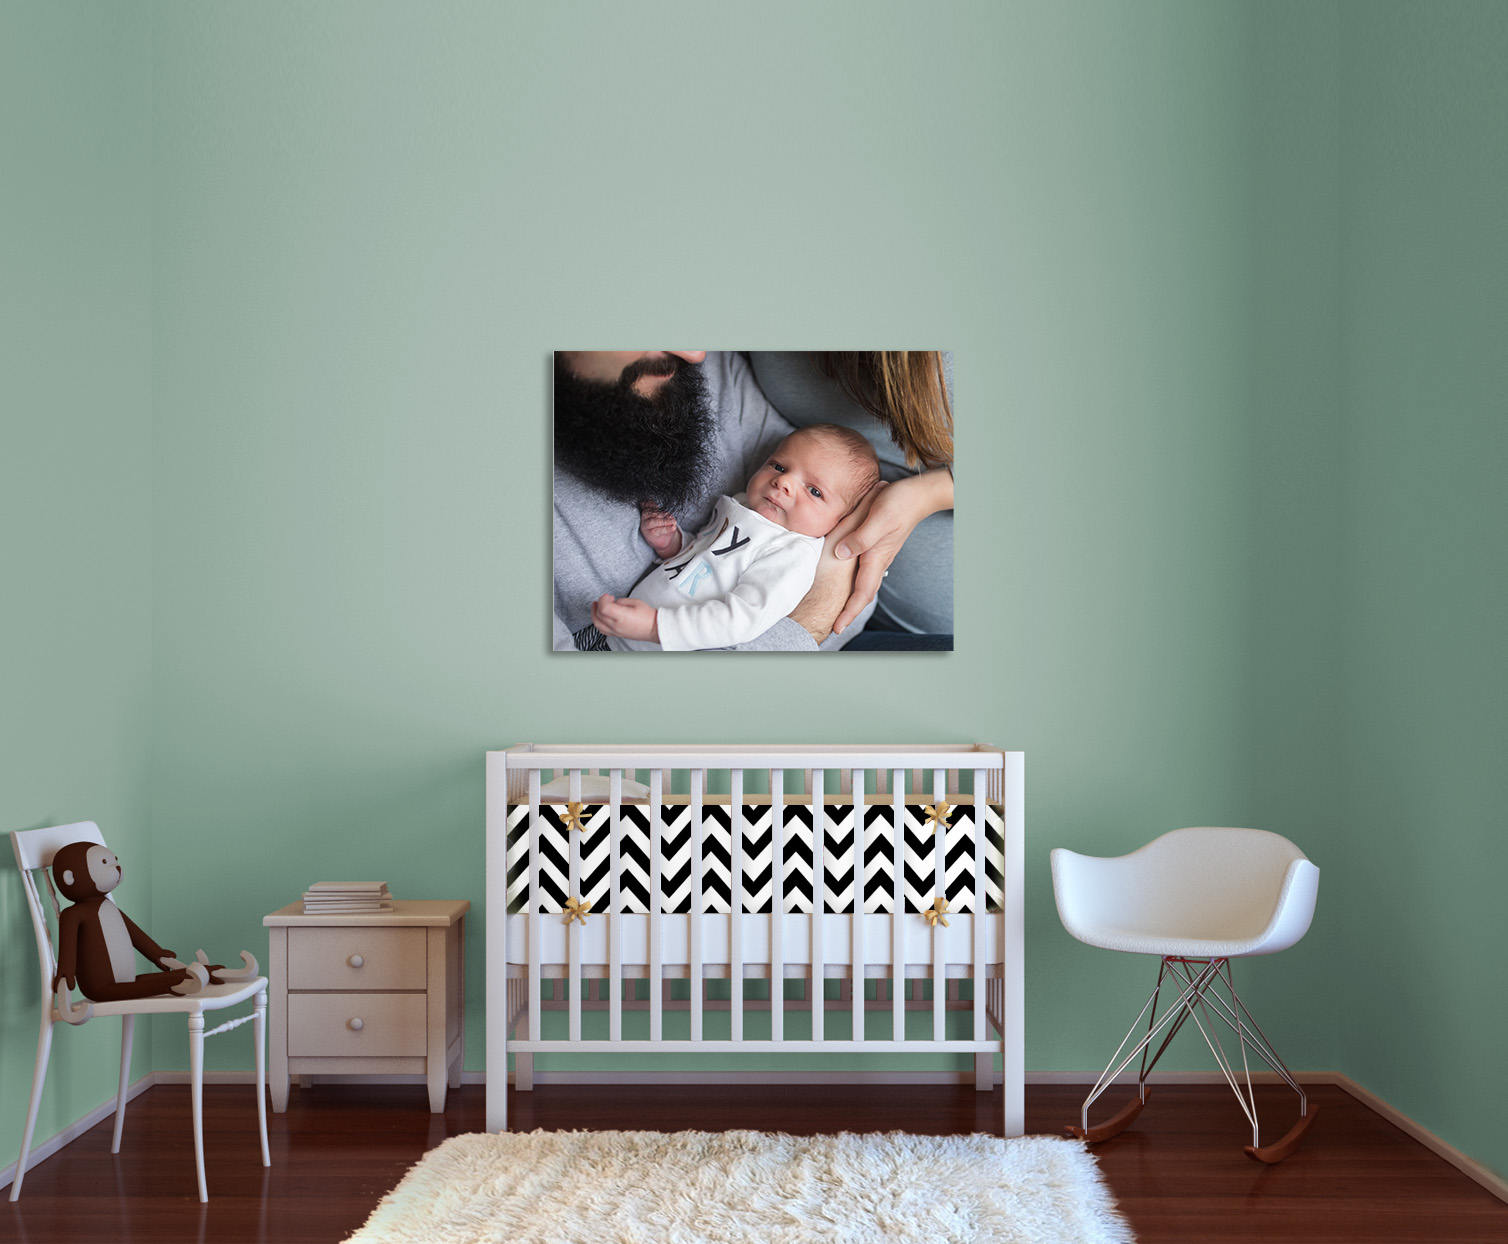 (1) 20x30 Canvas fills the space and makes a statement.